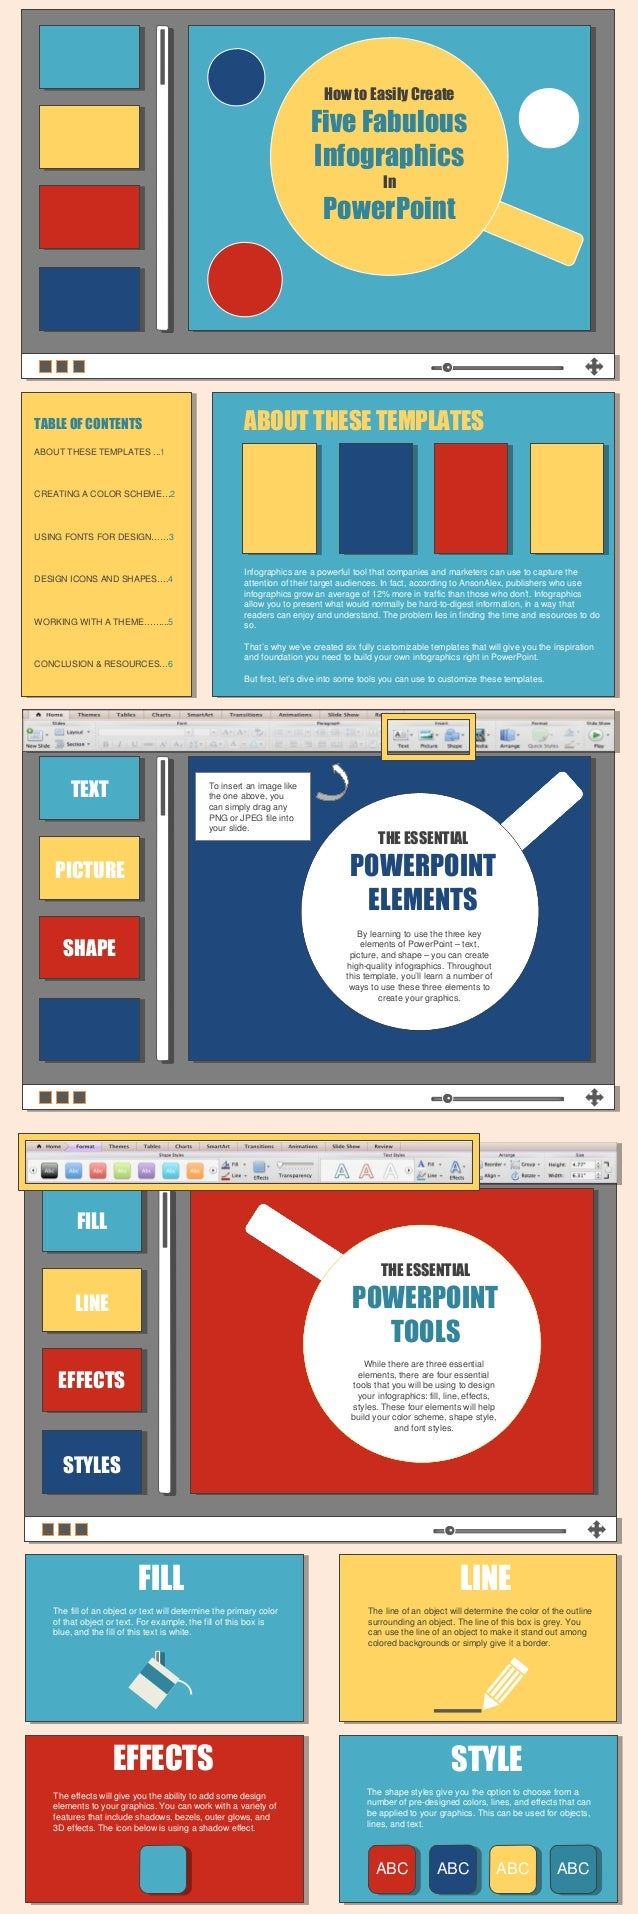 How to Easily CreateFive FabulousInfographicsInPowerPointTABLE OF CONTENTSABOUT THESE TEMPLATES ...1CREATING A COLOR SCHEM...